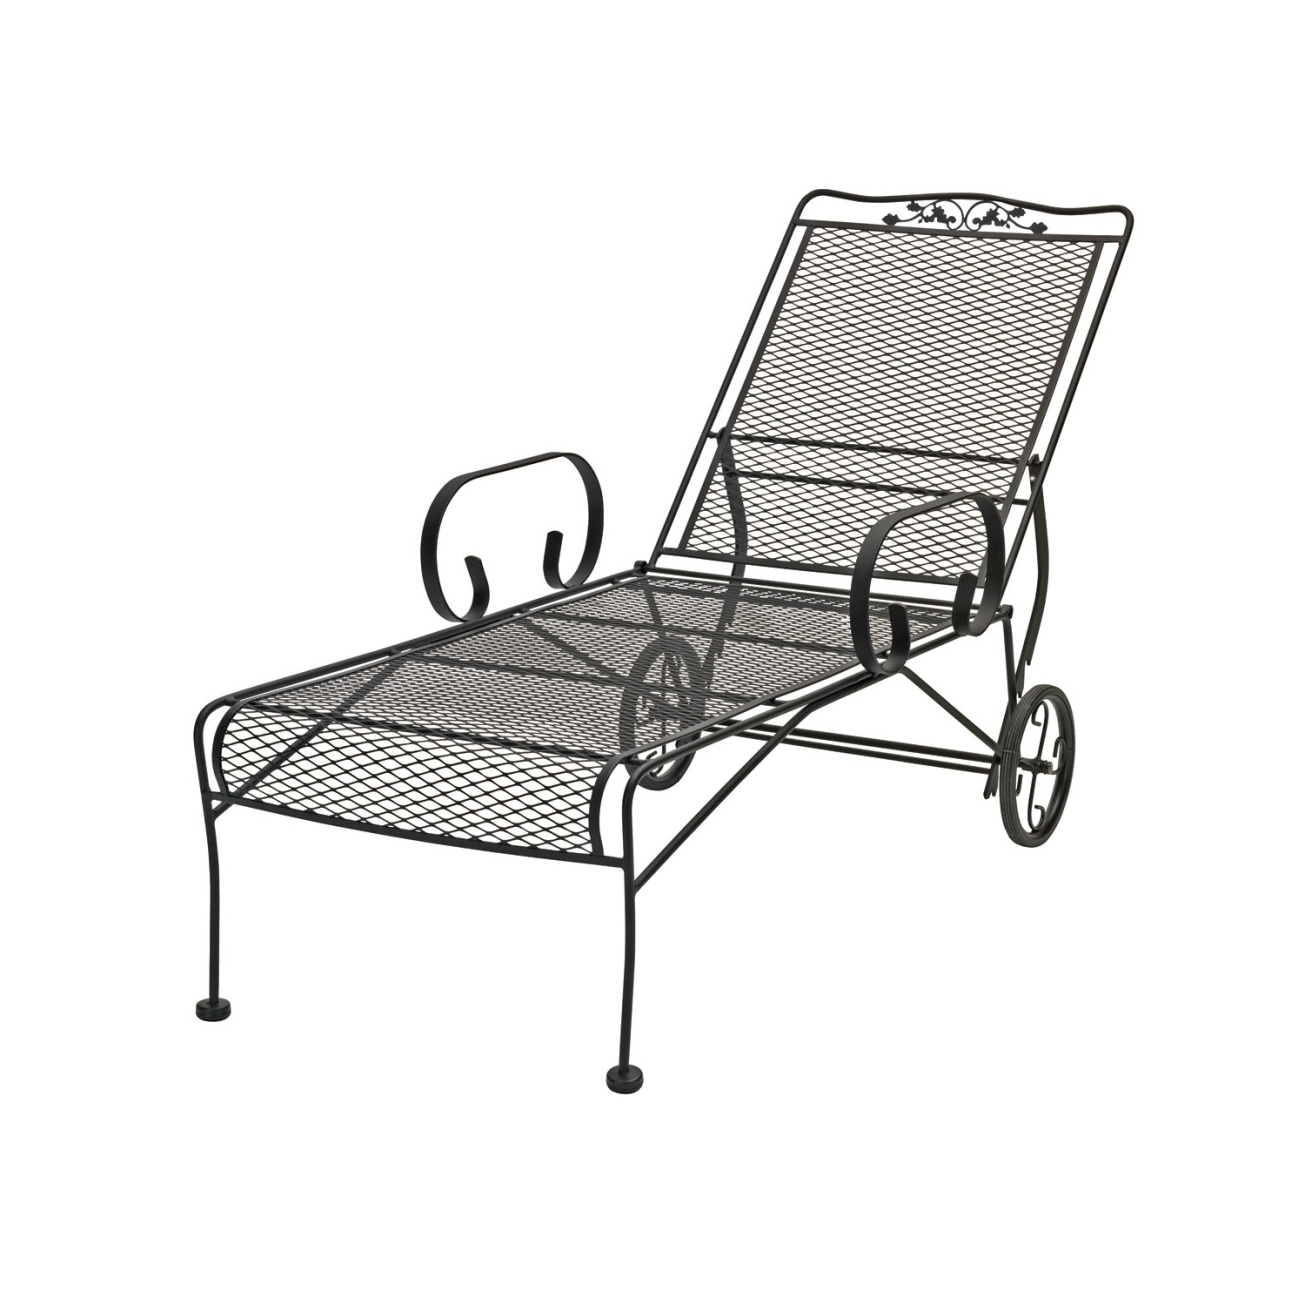 2017 Lounge Chair : Outdoor Stools Black Outdoor Lounge Chairs Metal With Regard To Black Chaise Lounge Outdoor Chairs (View 7 of 15)